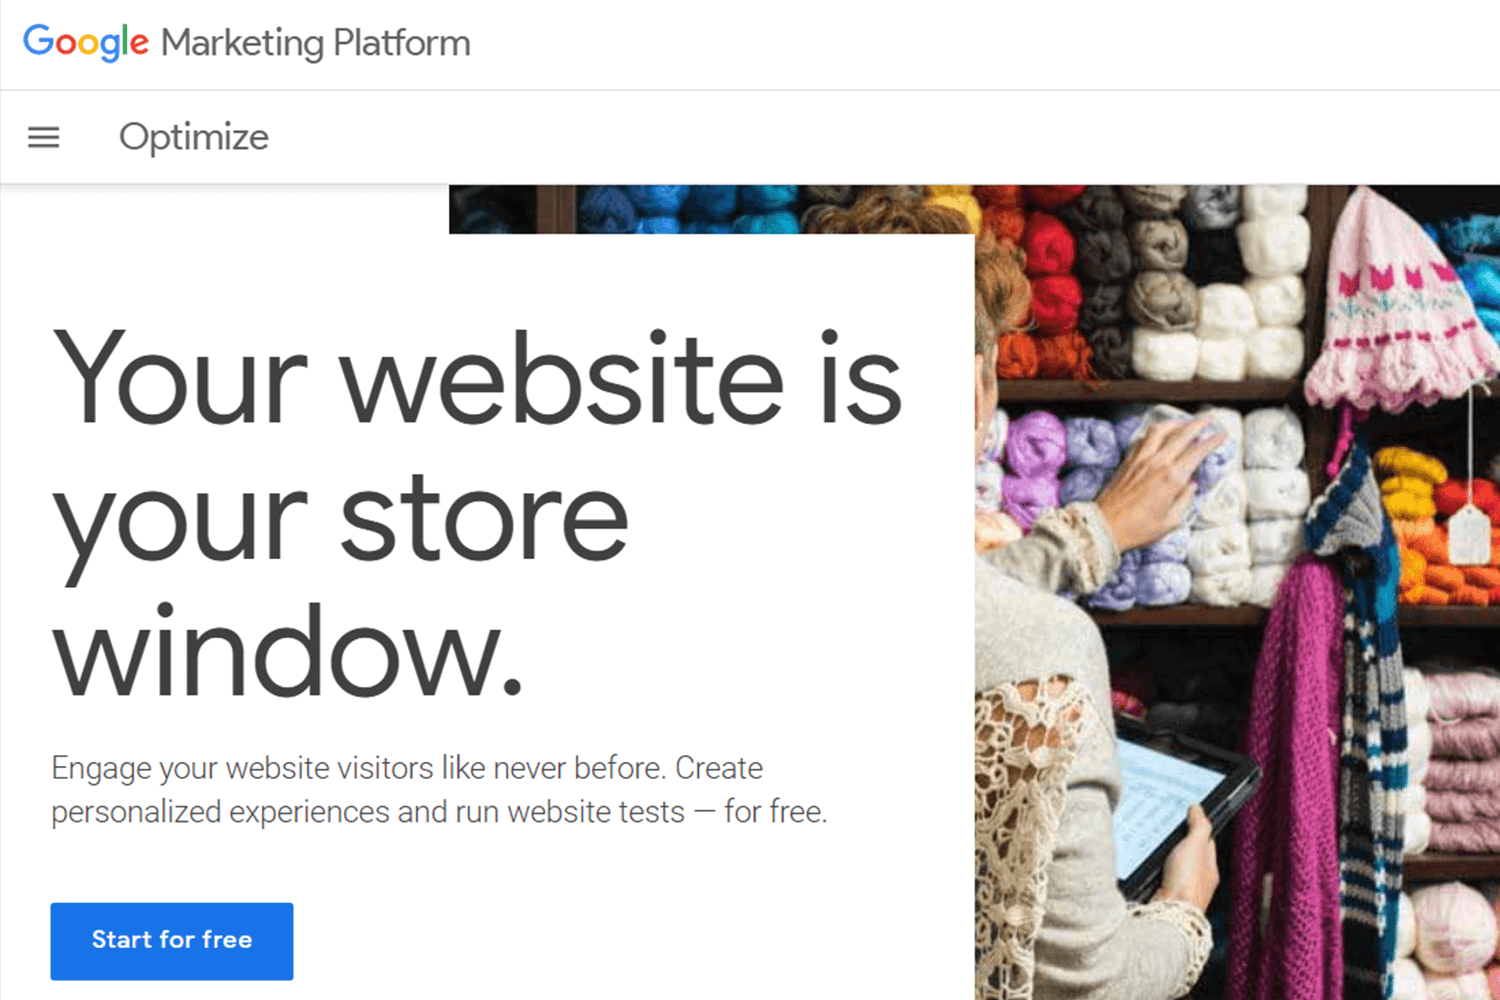 google optimize as an ab testing tool for marketing